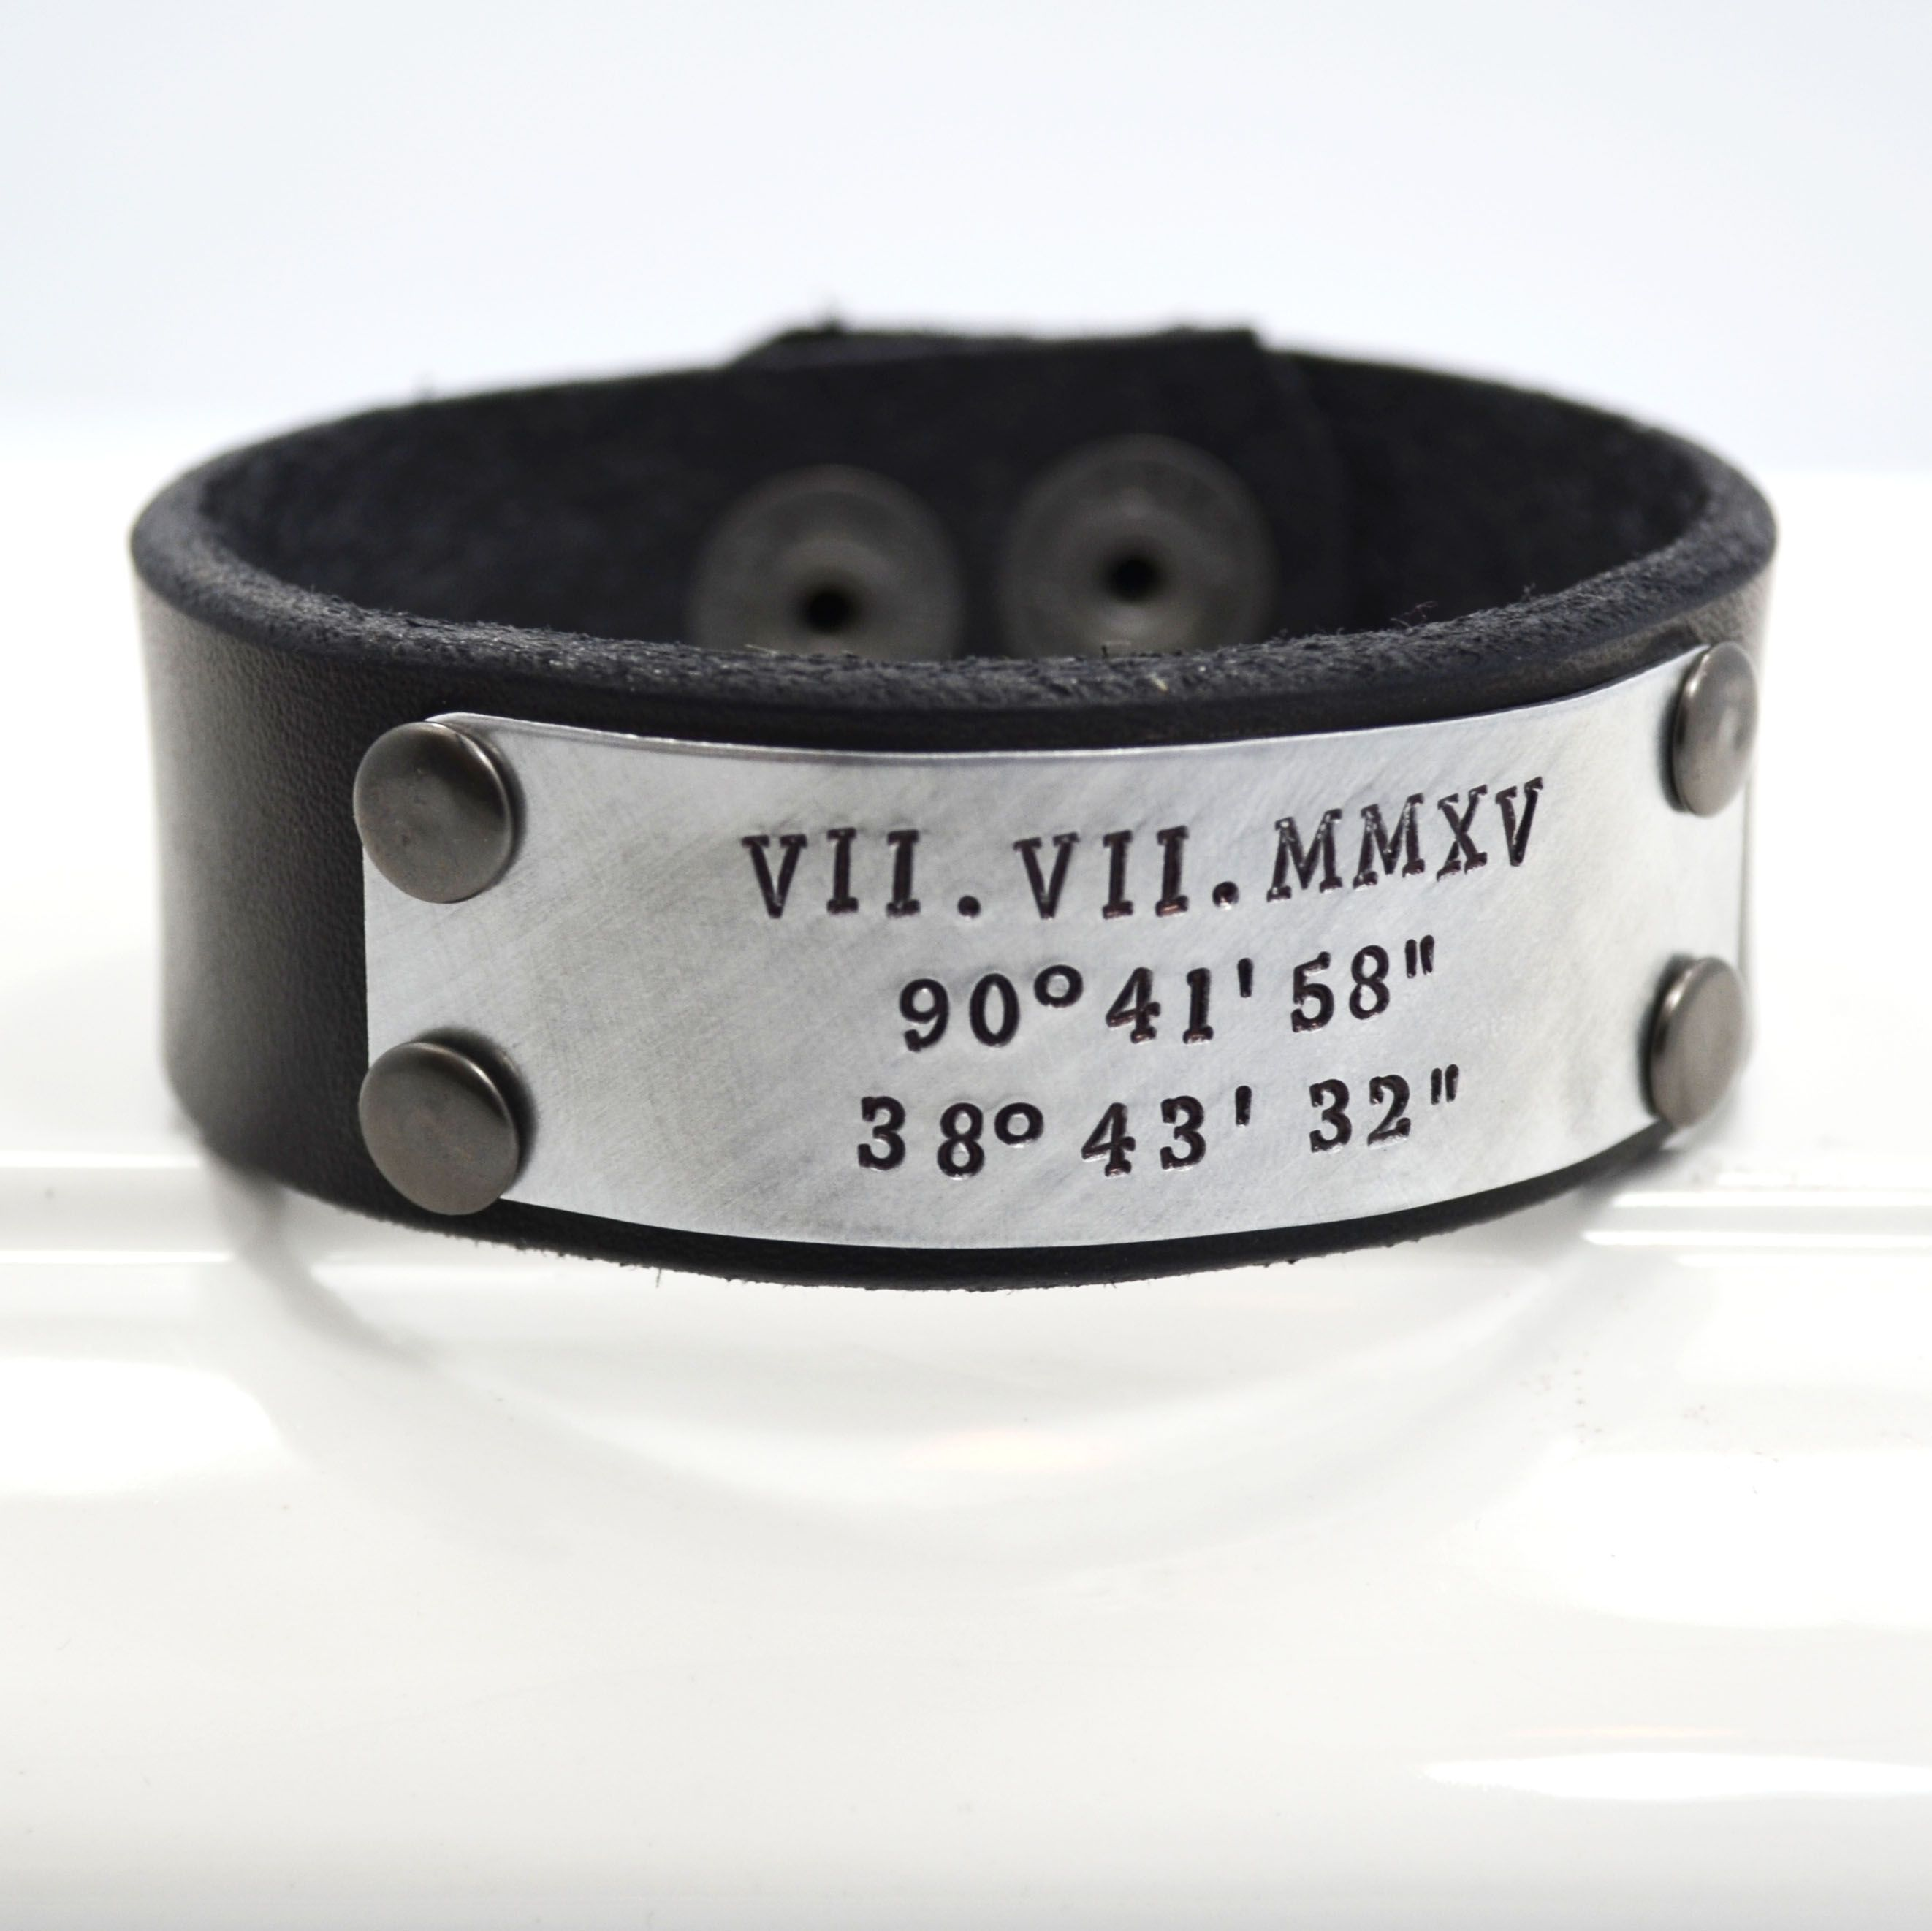 Hand Made Leather Cuff Bracelet For Men Or Women Personalized With Roman Numerals Dates Names To Order From Designme Jewelry Custommade